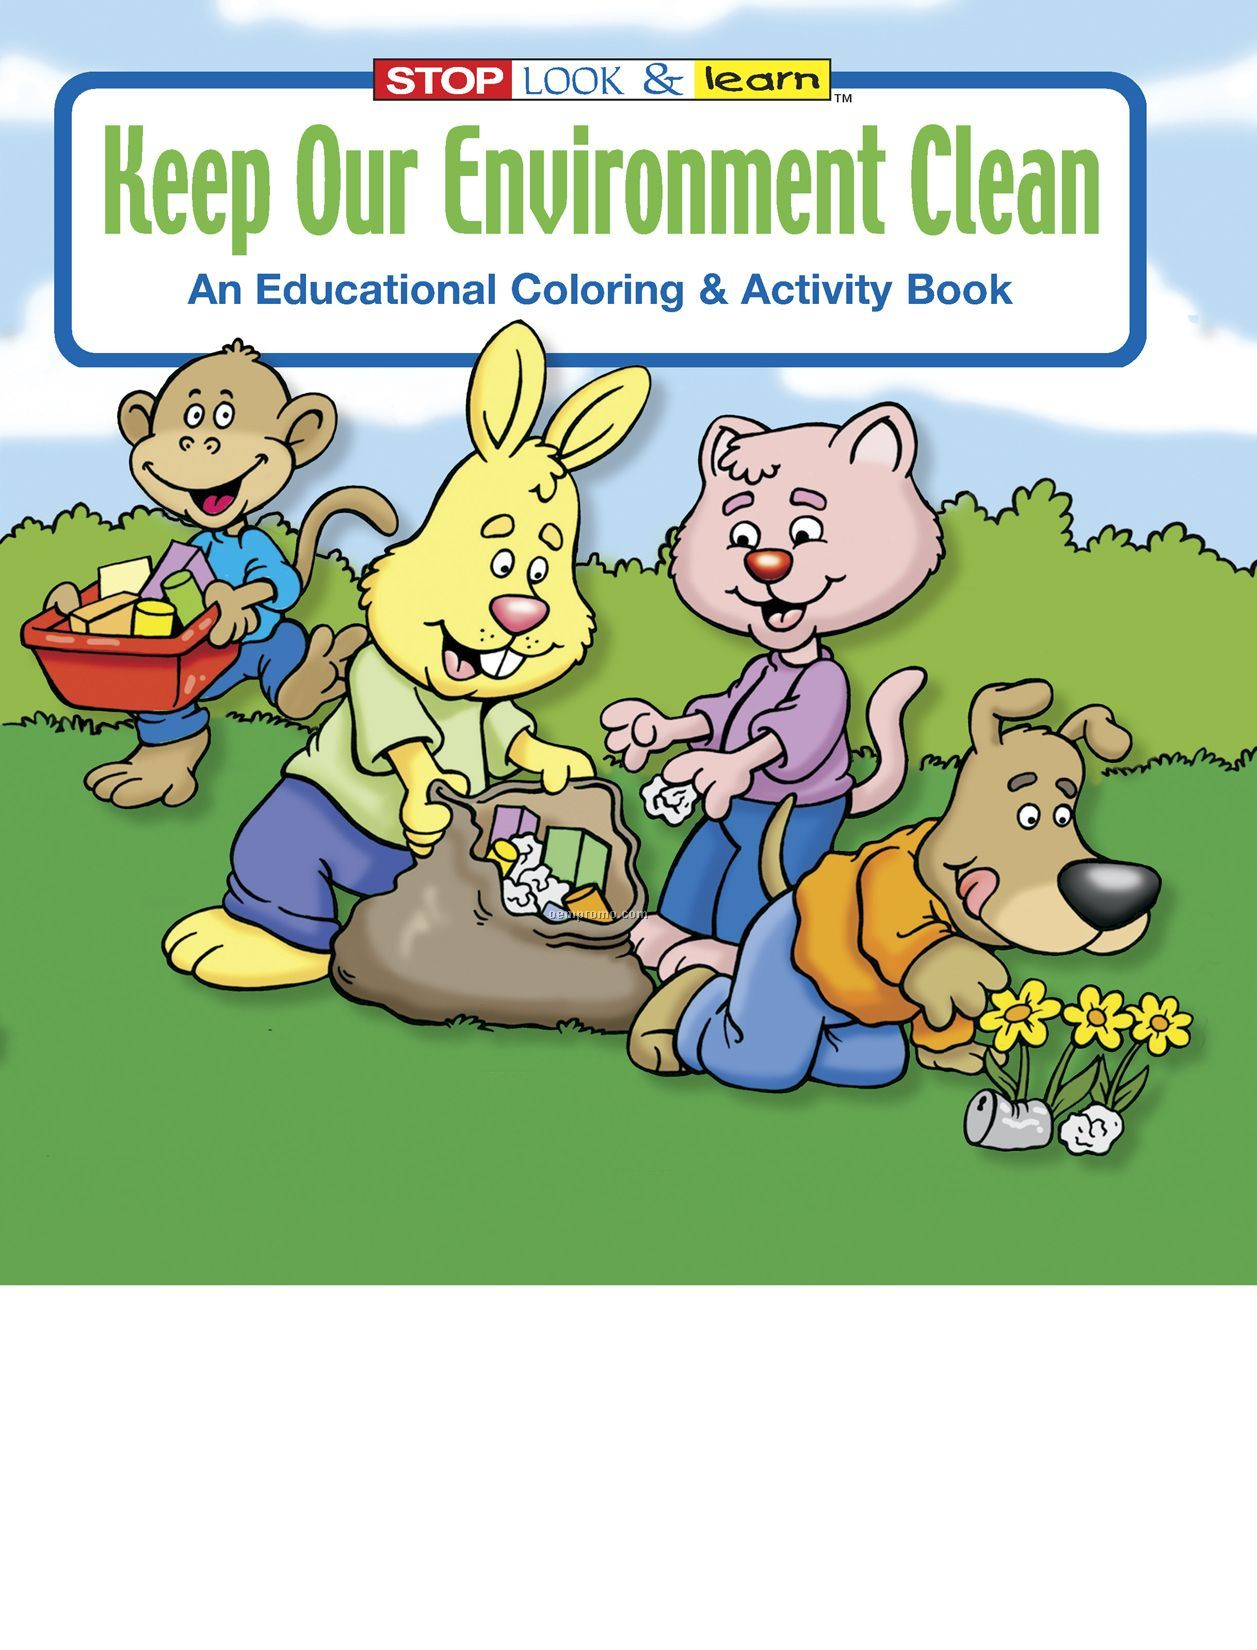 http://photo.oempromo.com/Prod_755/Keep-Our-Environment-Clean-Coloring-Book-Fun-Pack_24826551.jpg